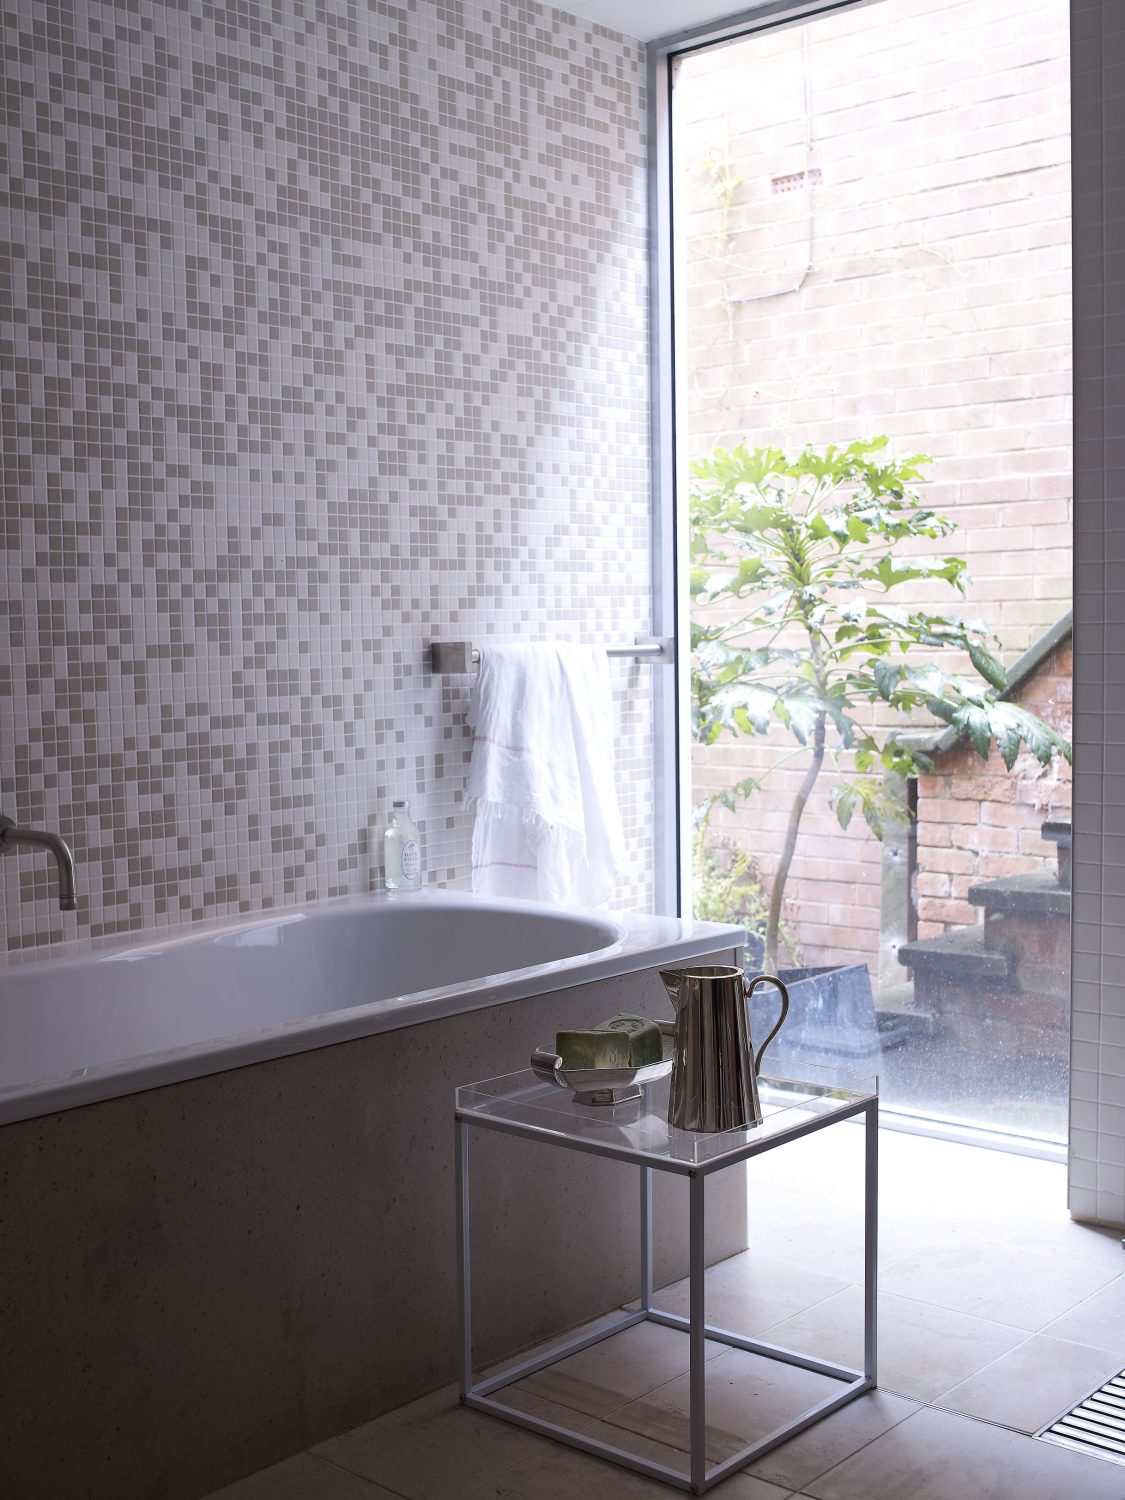 Reincarnate Key Pieces: An elegant, modern, square-legged side table becomes a practical bathing aid in Tim Rundle's bathroom. On top, a vintage silver jug and soap dish reside, adding glinting, pretty accessories. Here, tiles play with proportion: large square floor tiles juxtapose with the tiny taupe and white mosaic tiles on the walls. The bath, painted in taupe, continues the natural, neutral feel. The large floor-to-ceiling window brings in the natural world, making this the perfect urban space in which to relax and reflect.